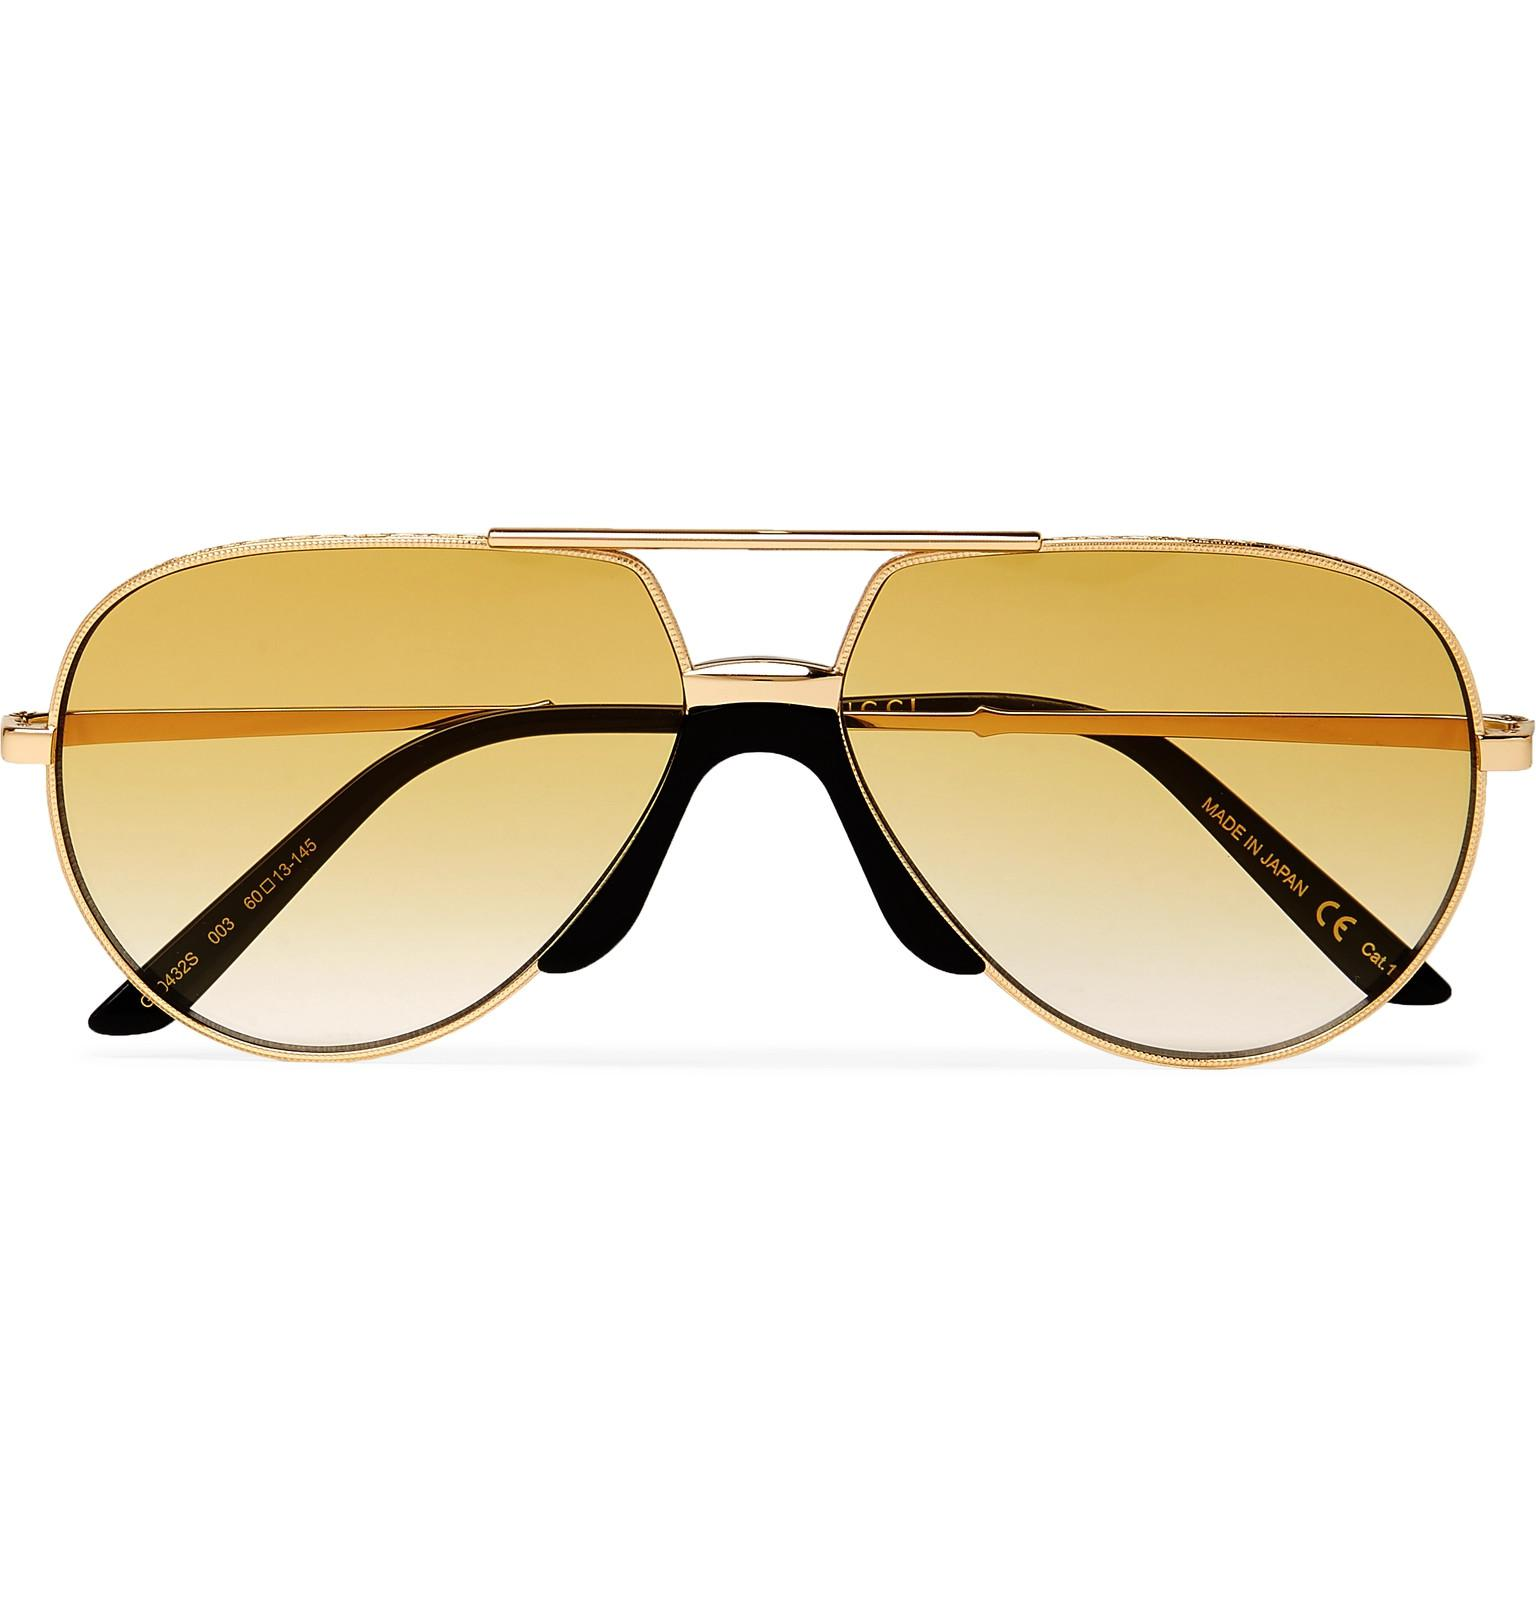 91d7a2565f18 Lyst - Gucci Aviator-style Gold-tone Sunglasses in Metallic for Men